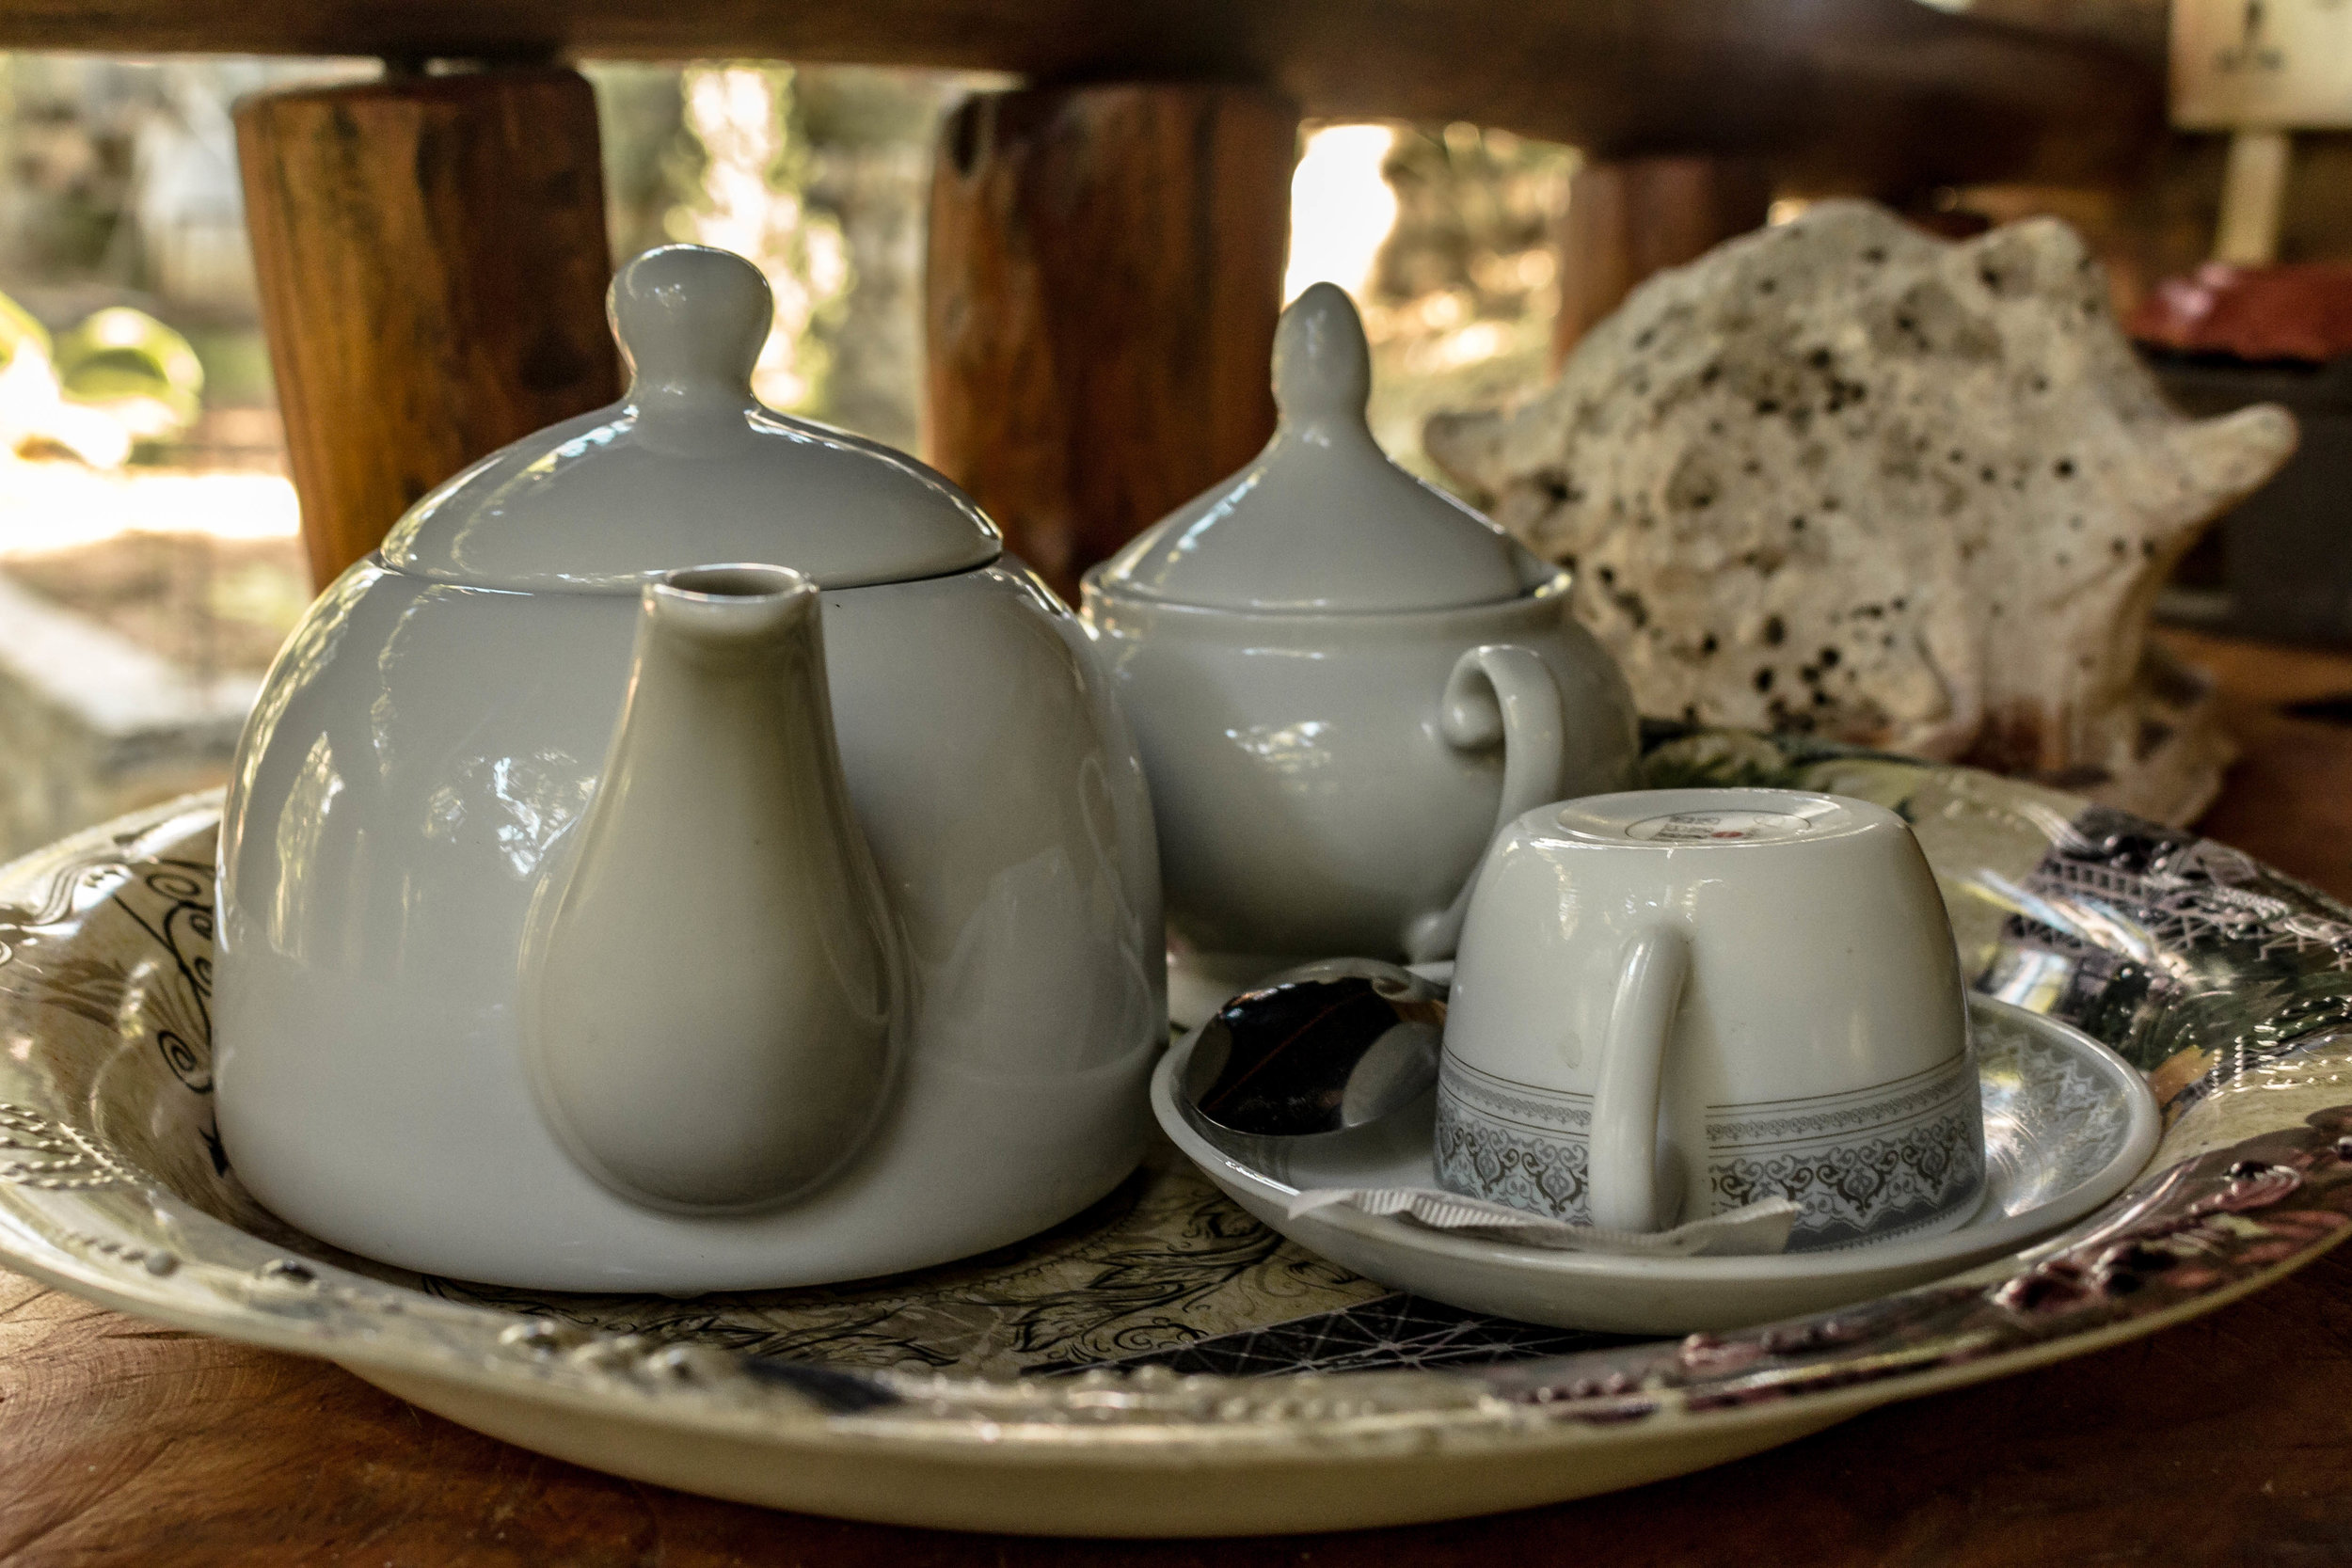 TEA IS BROUGHT TO YOU AT THE START AND END OF EACH DAY, AND BEFORE AND AFTER YOUR SAFARI {IF YOU GO ON ONE} AT THE WOODEN HUT